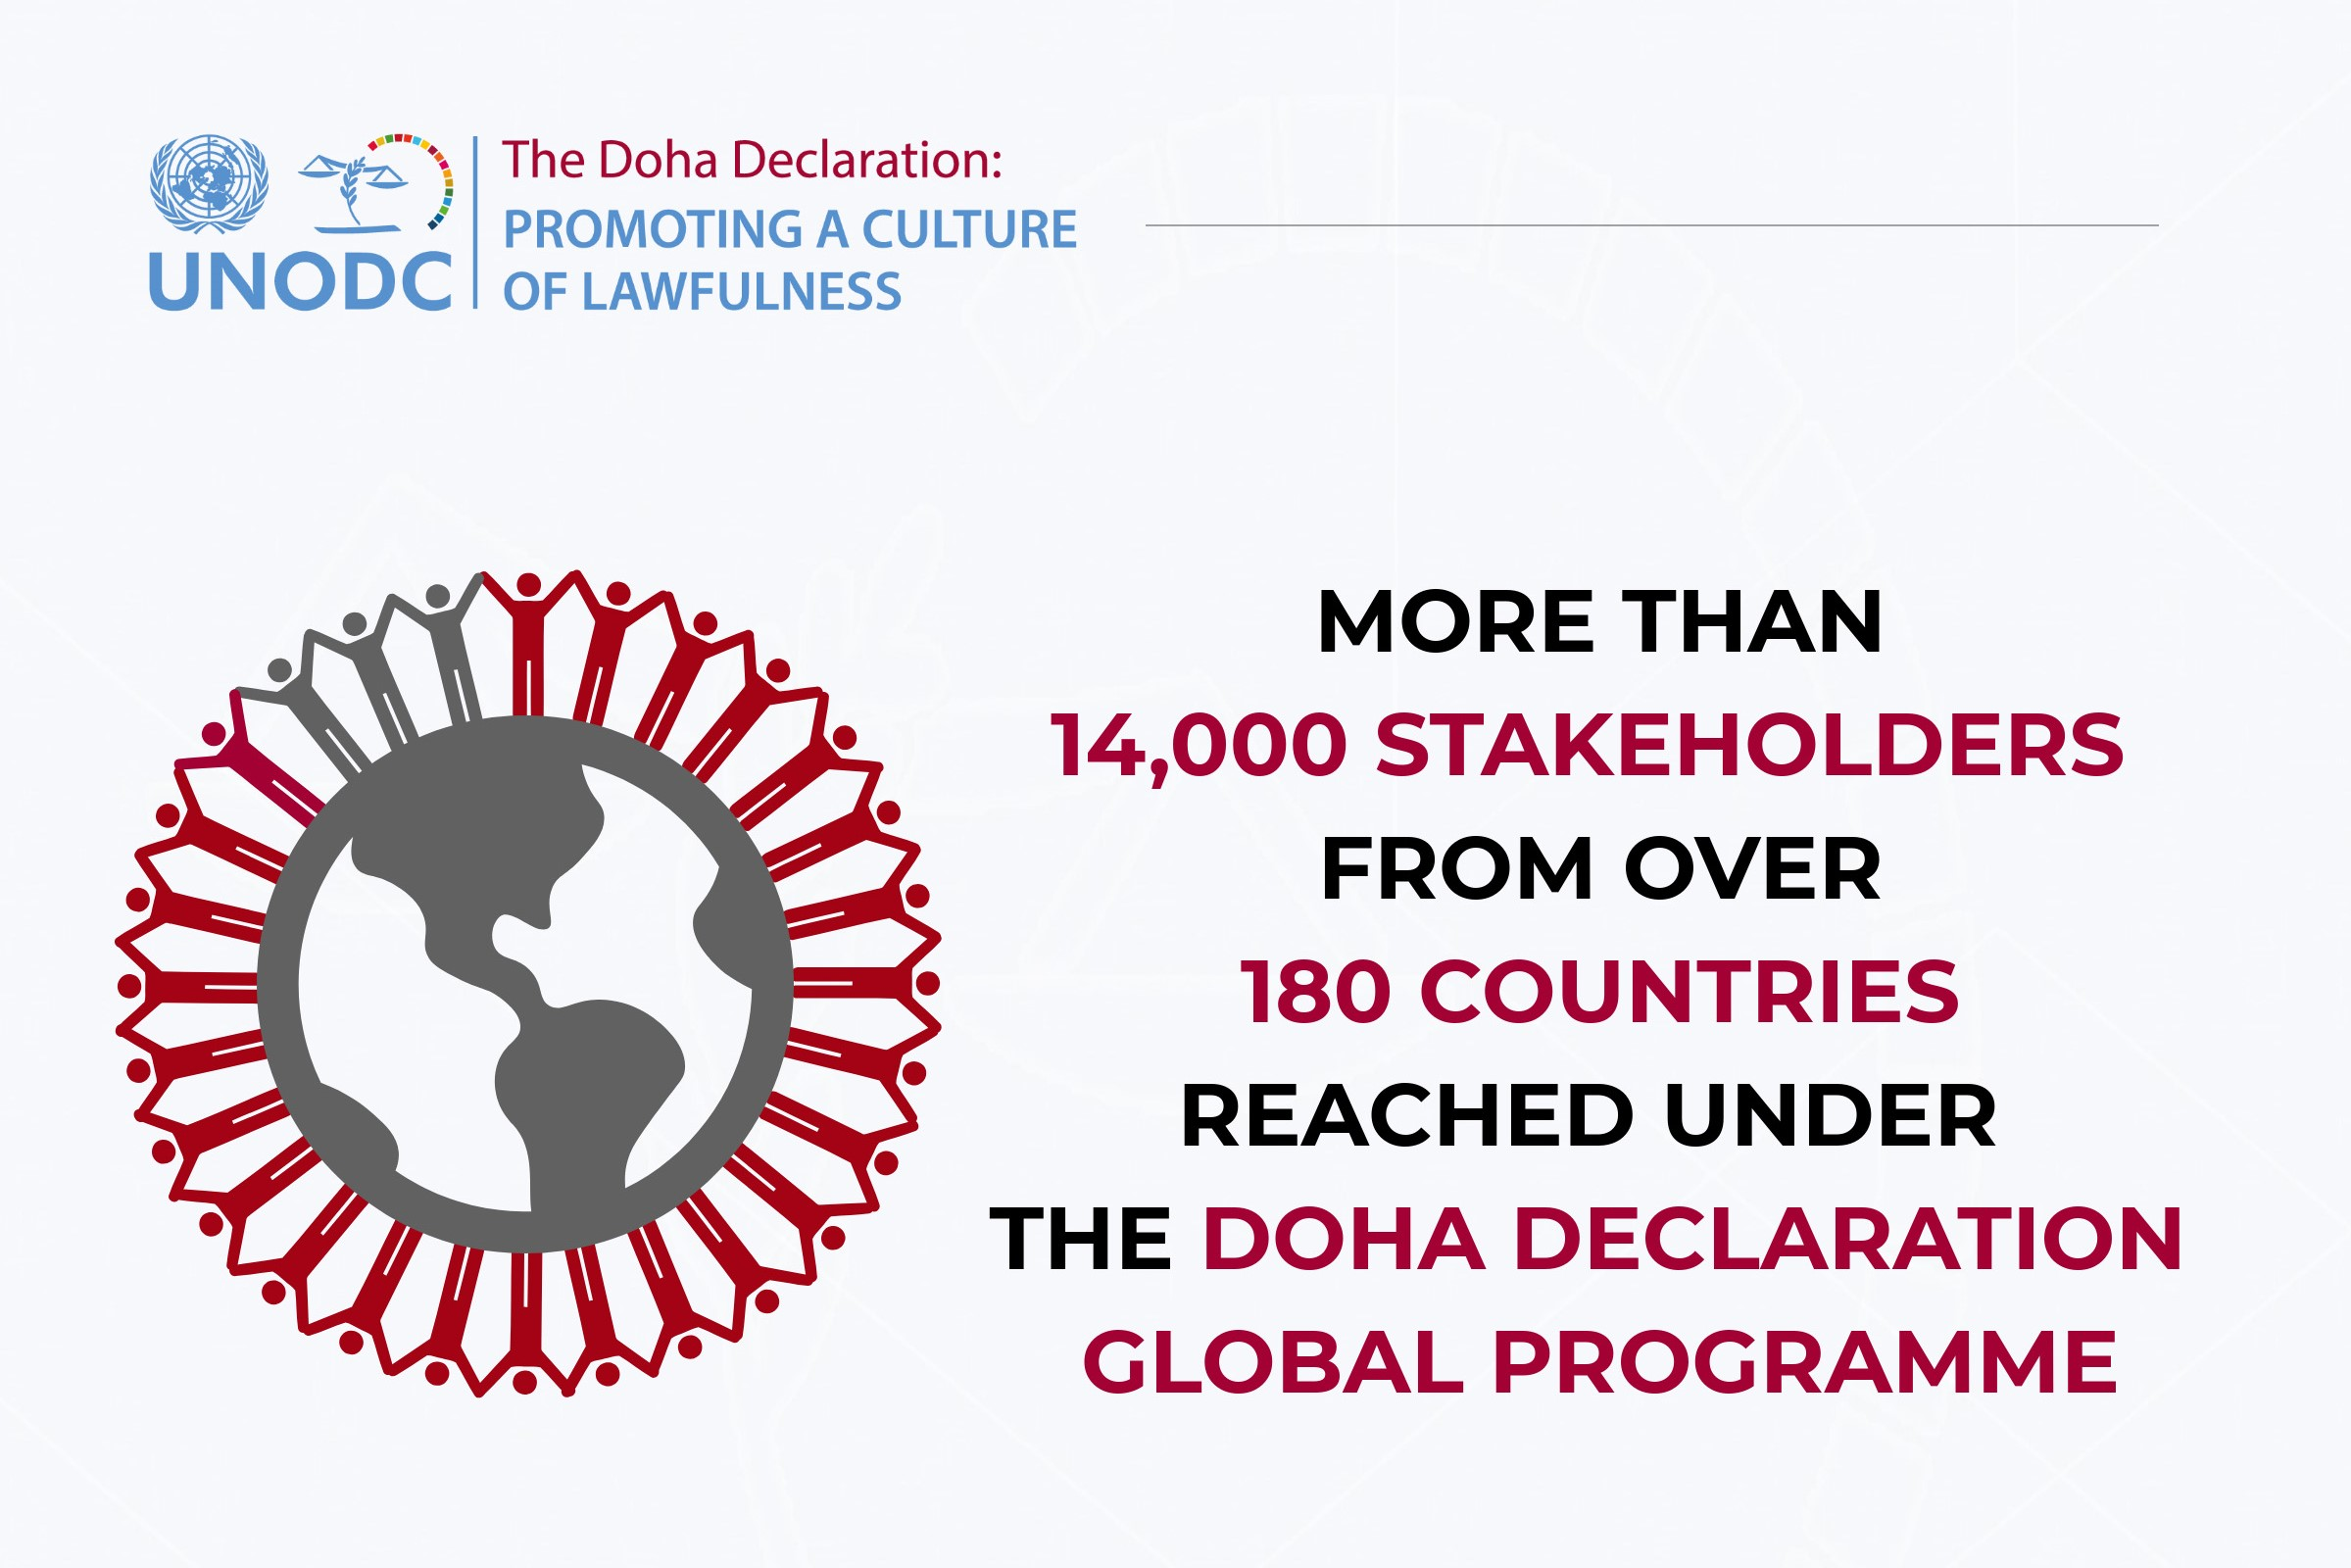 Two years of impactful achievements with the Doha Declaration Global Programme